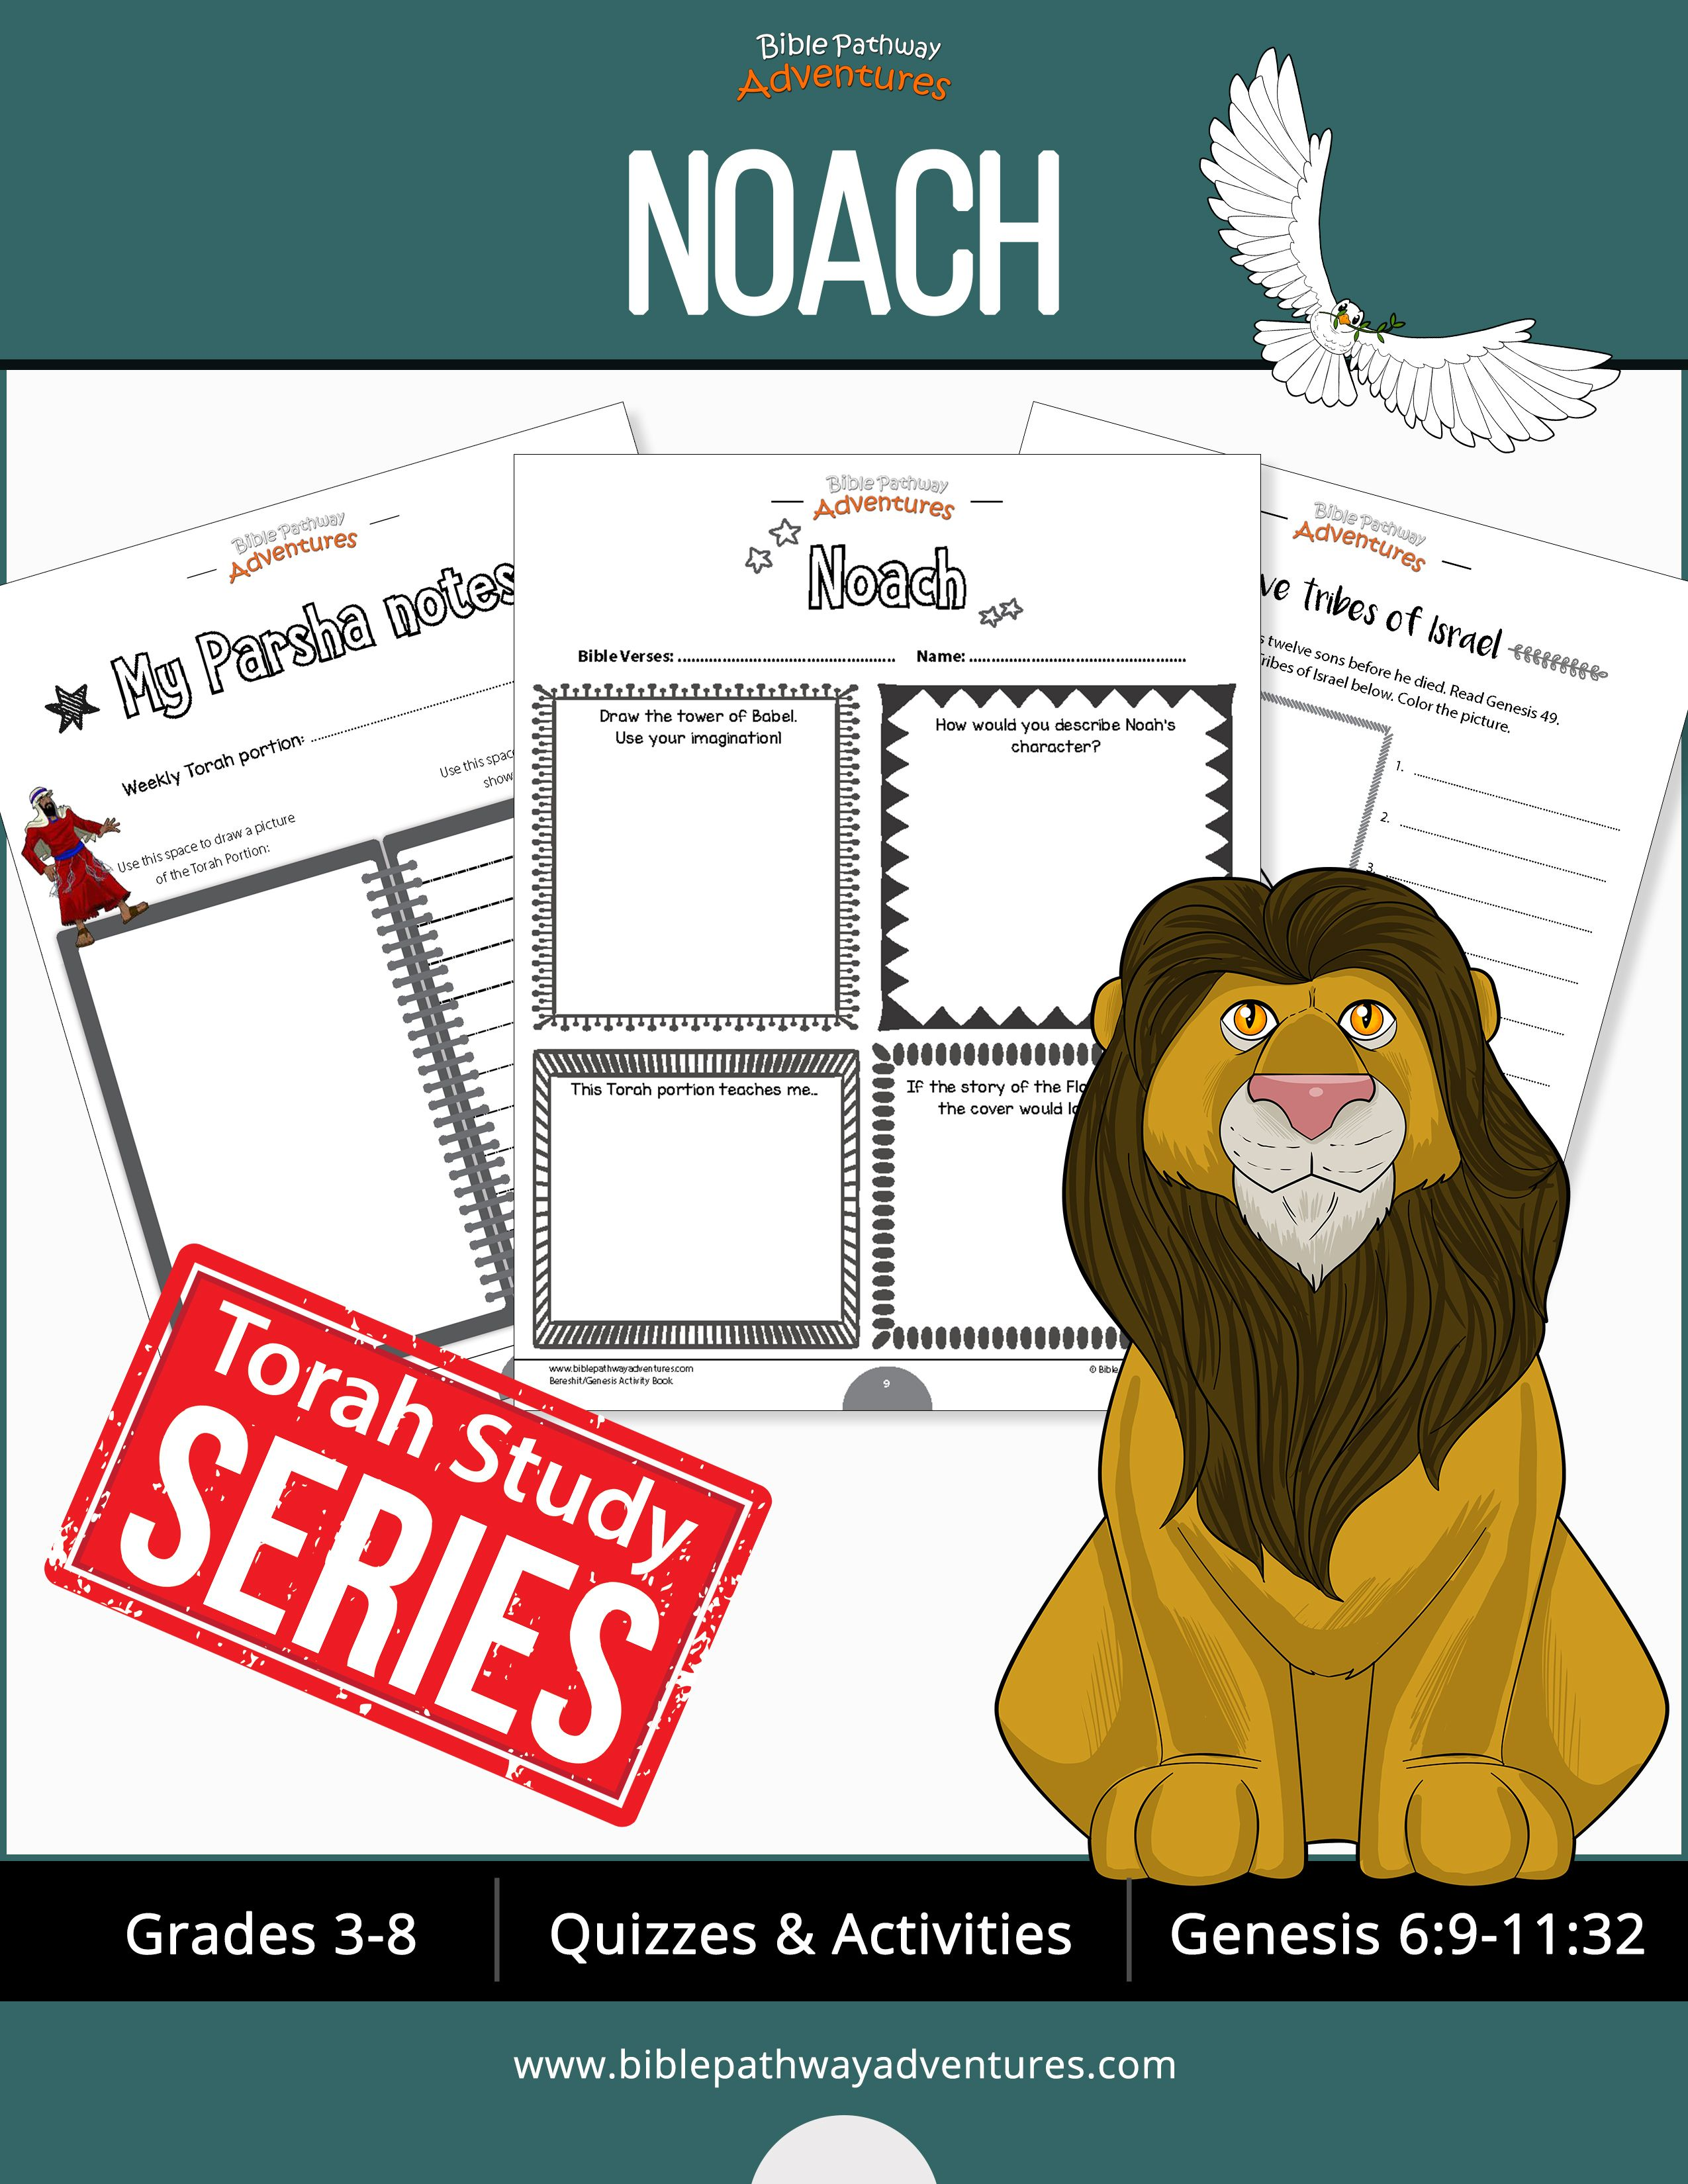 Noach genesis bible quizzes and activities from the